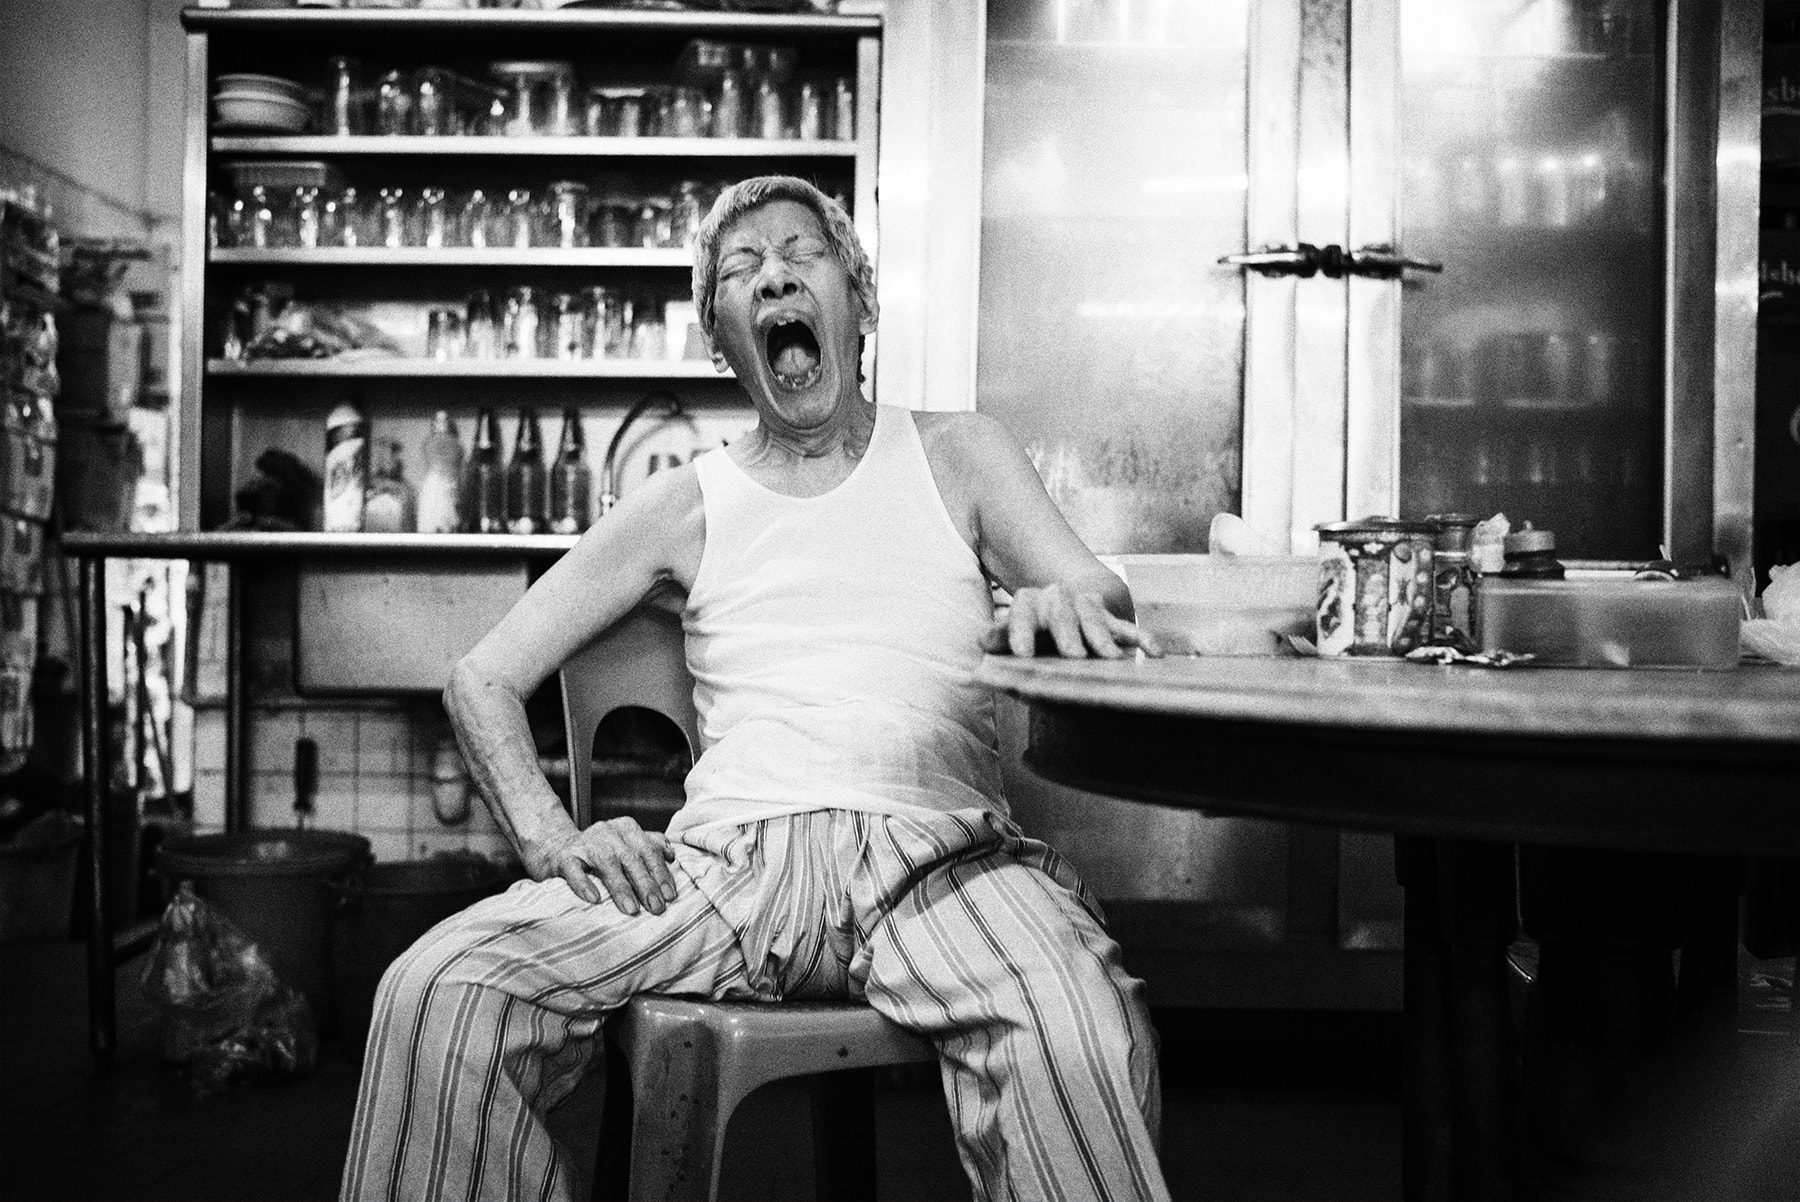 Photograph caffeine dreams, 2013 by  momofuku on 500px